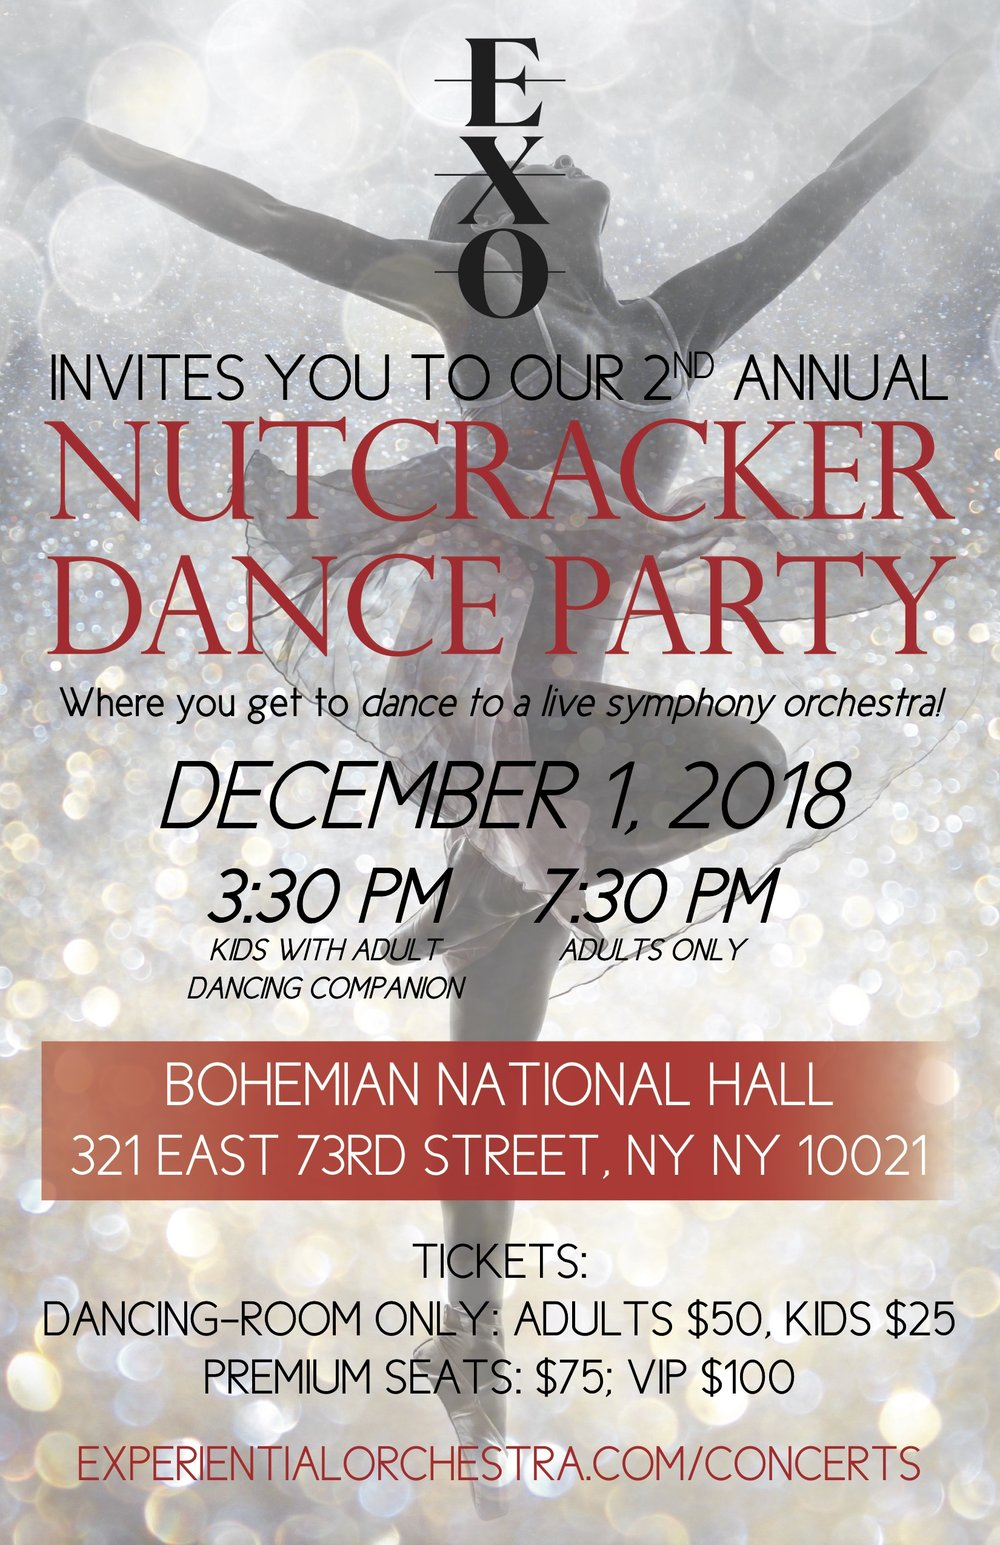 Nutcracker Dance Party 2018_2 (1).jpg